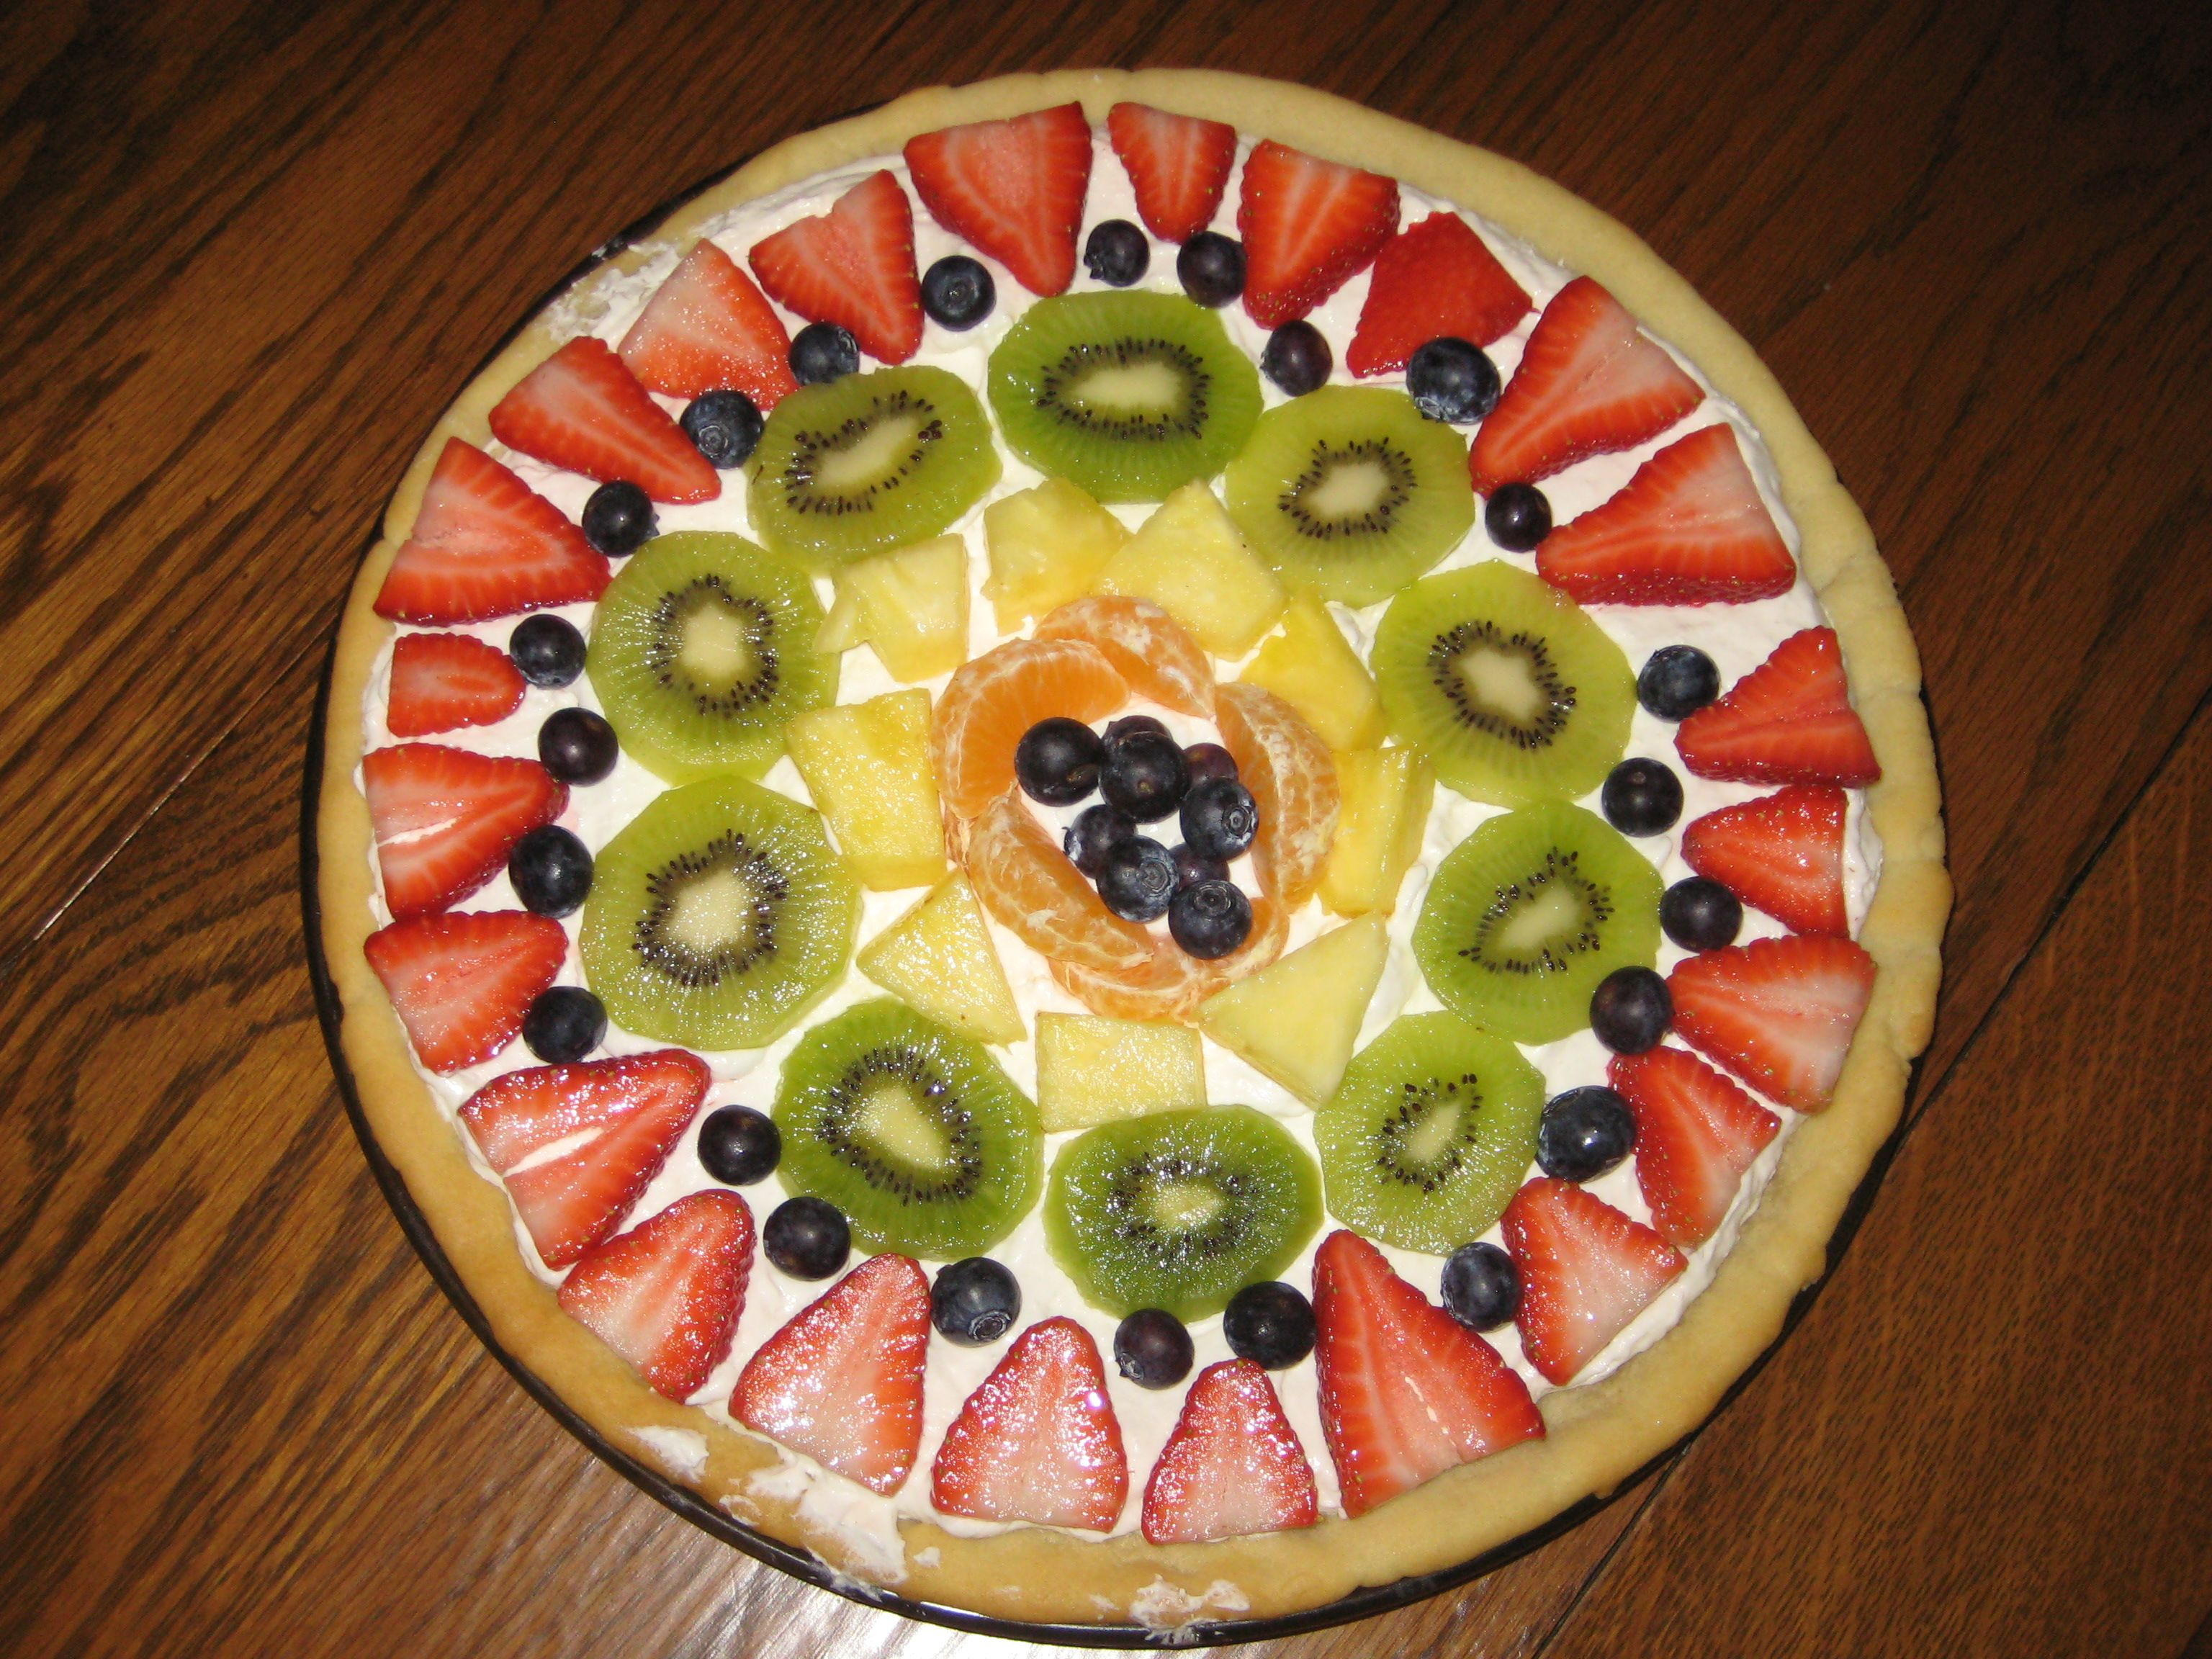 Fruit Pizza | Recipes 1 of 6 boards of recipes | Pinterest